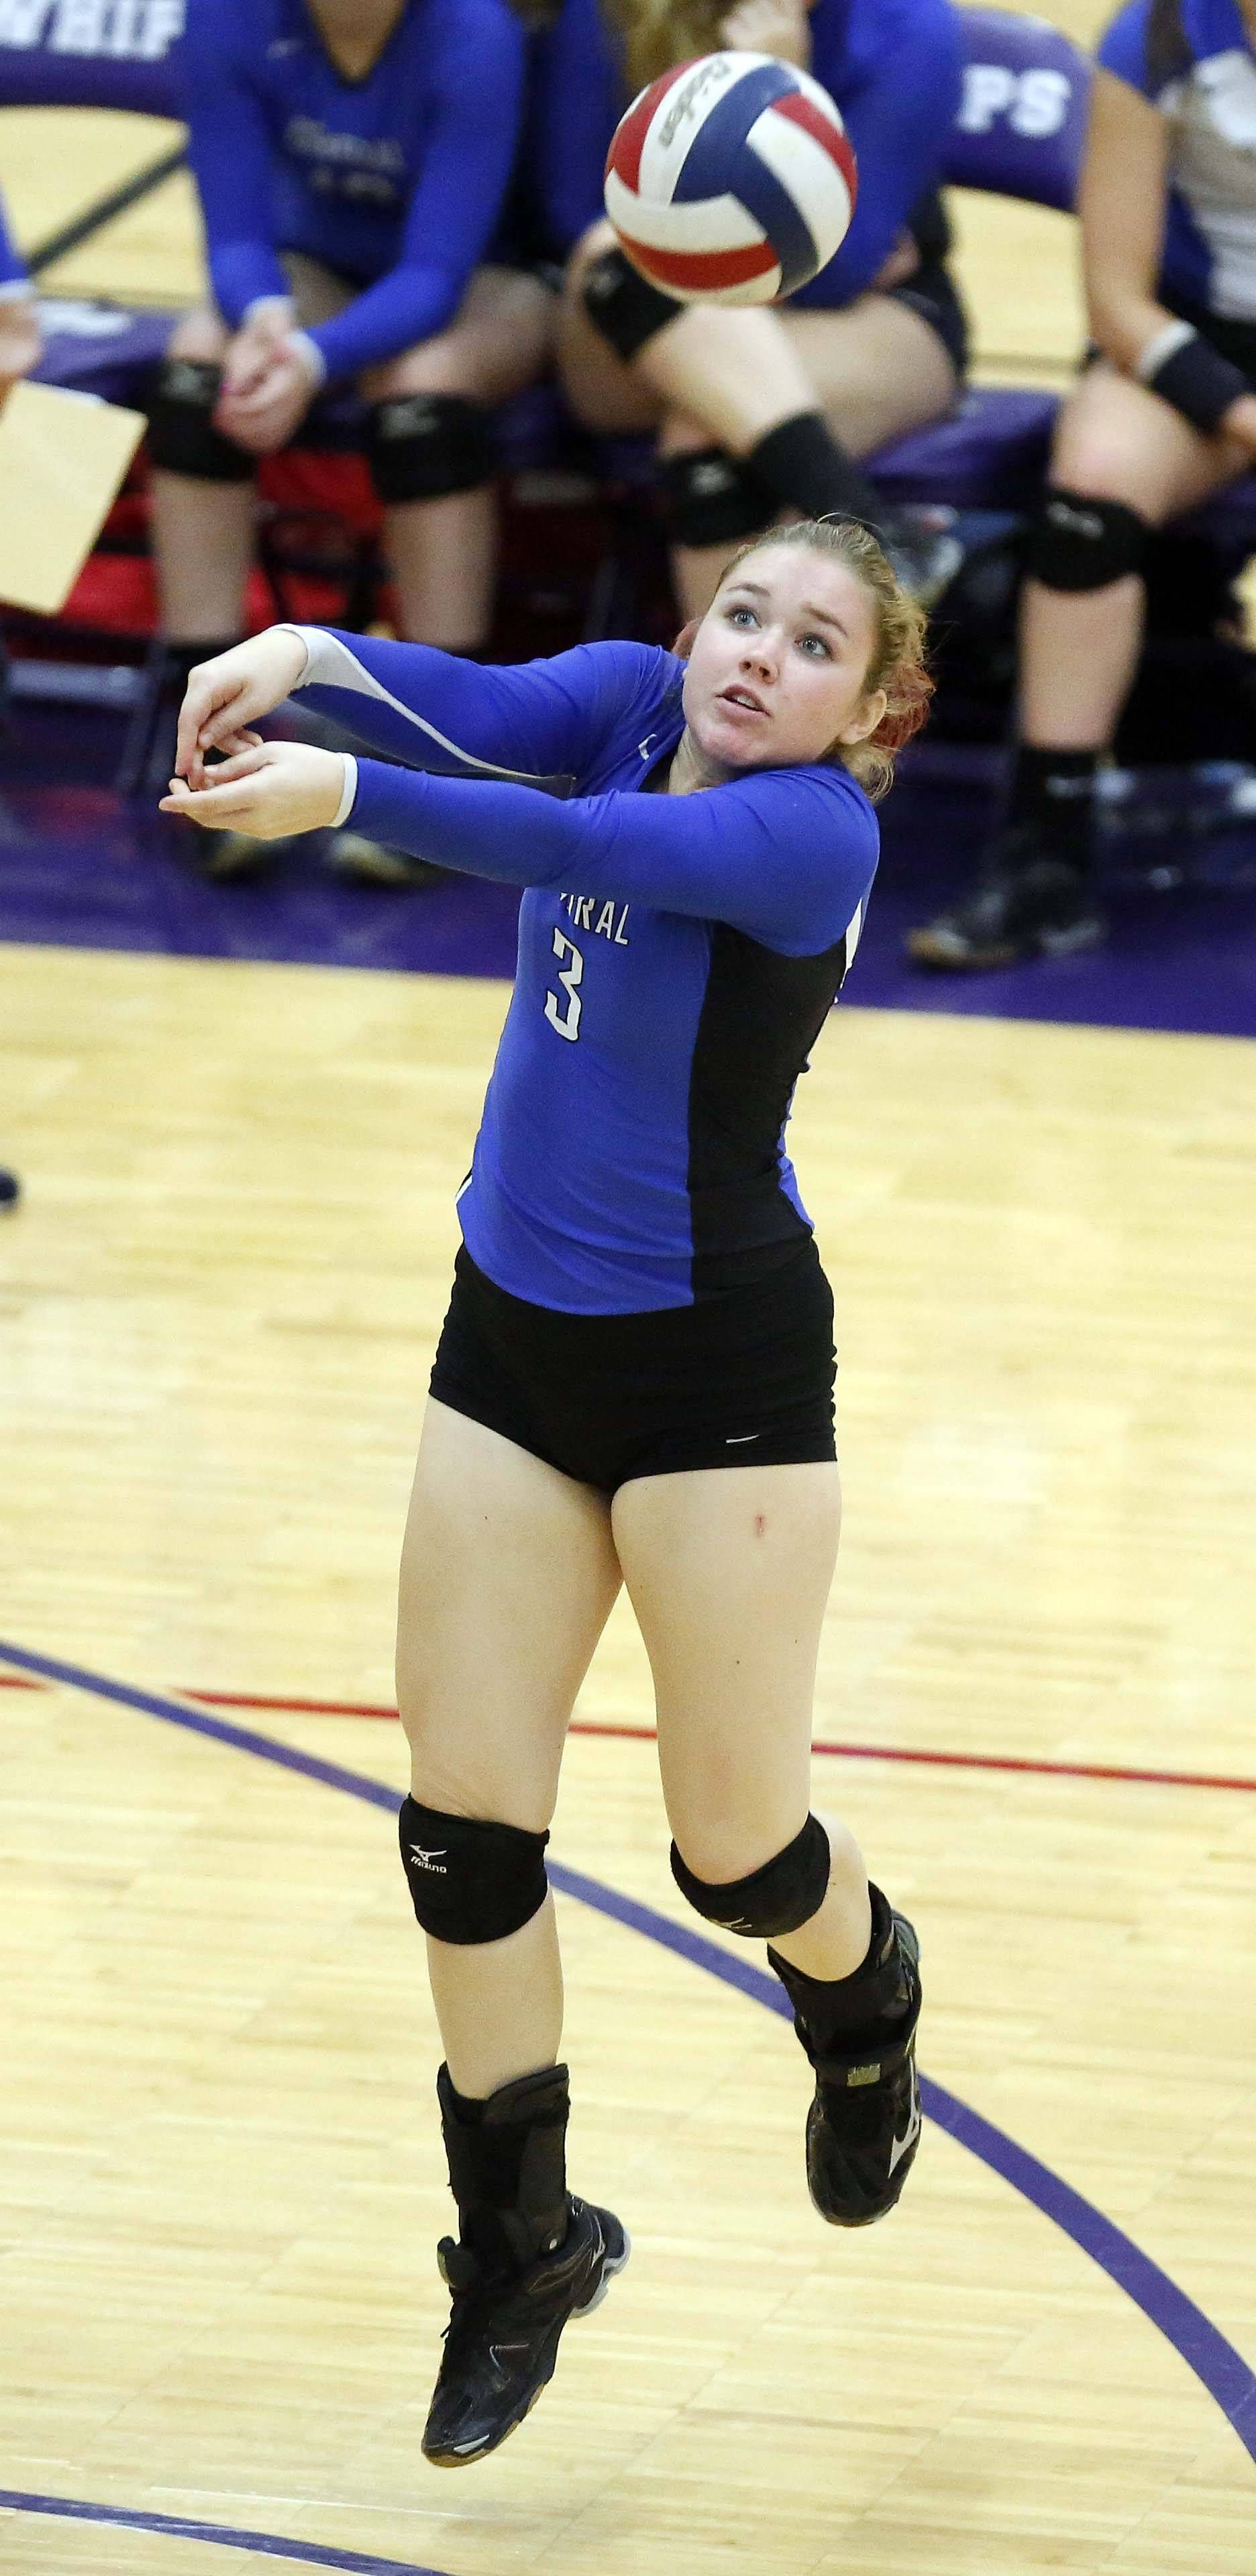 Burlington Central Repeats Title At Hampshire Prep Sports Sports Images Volleyball Tournaments